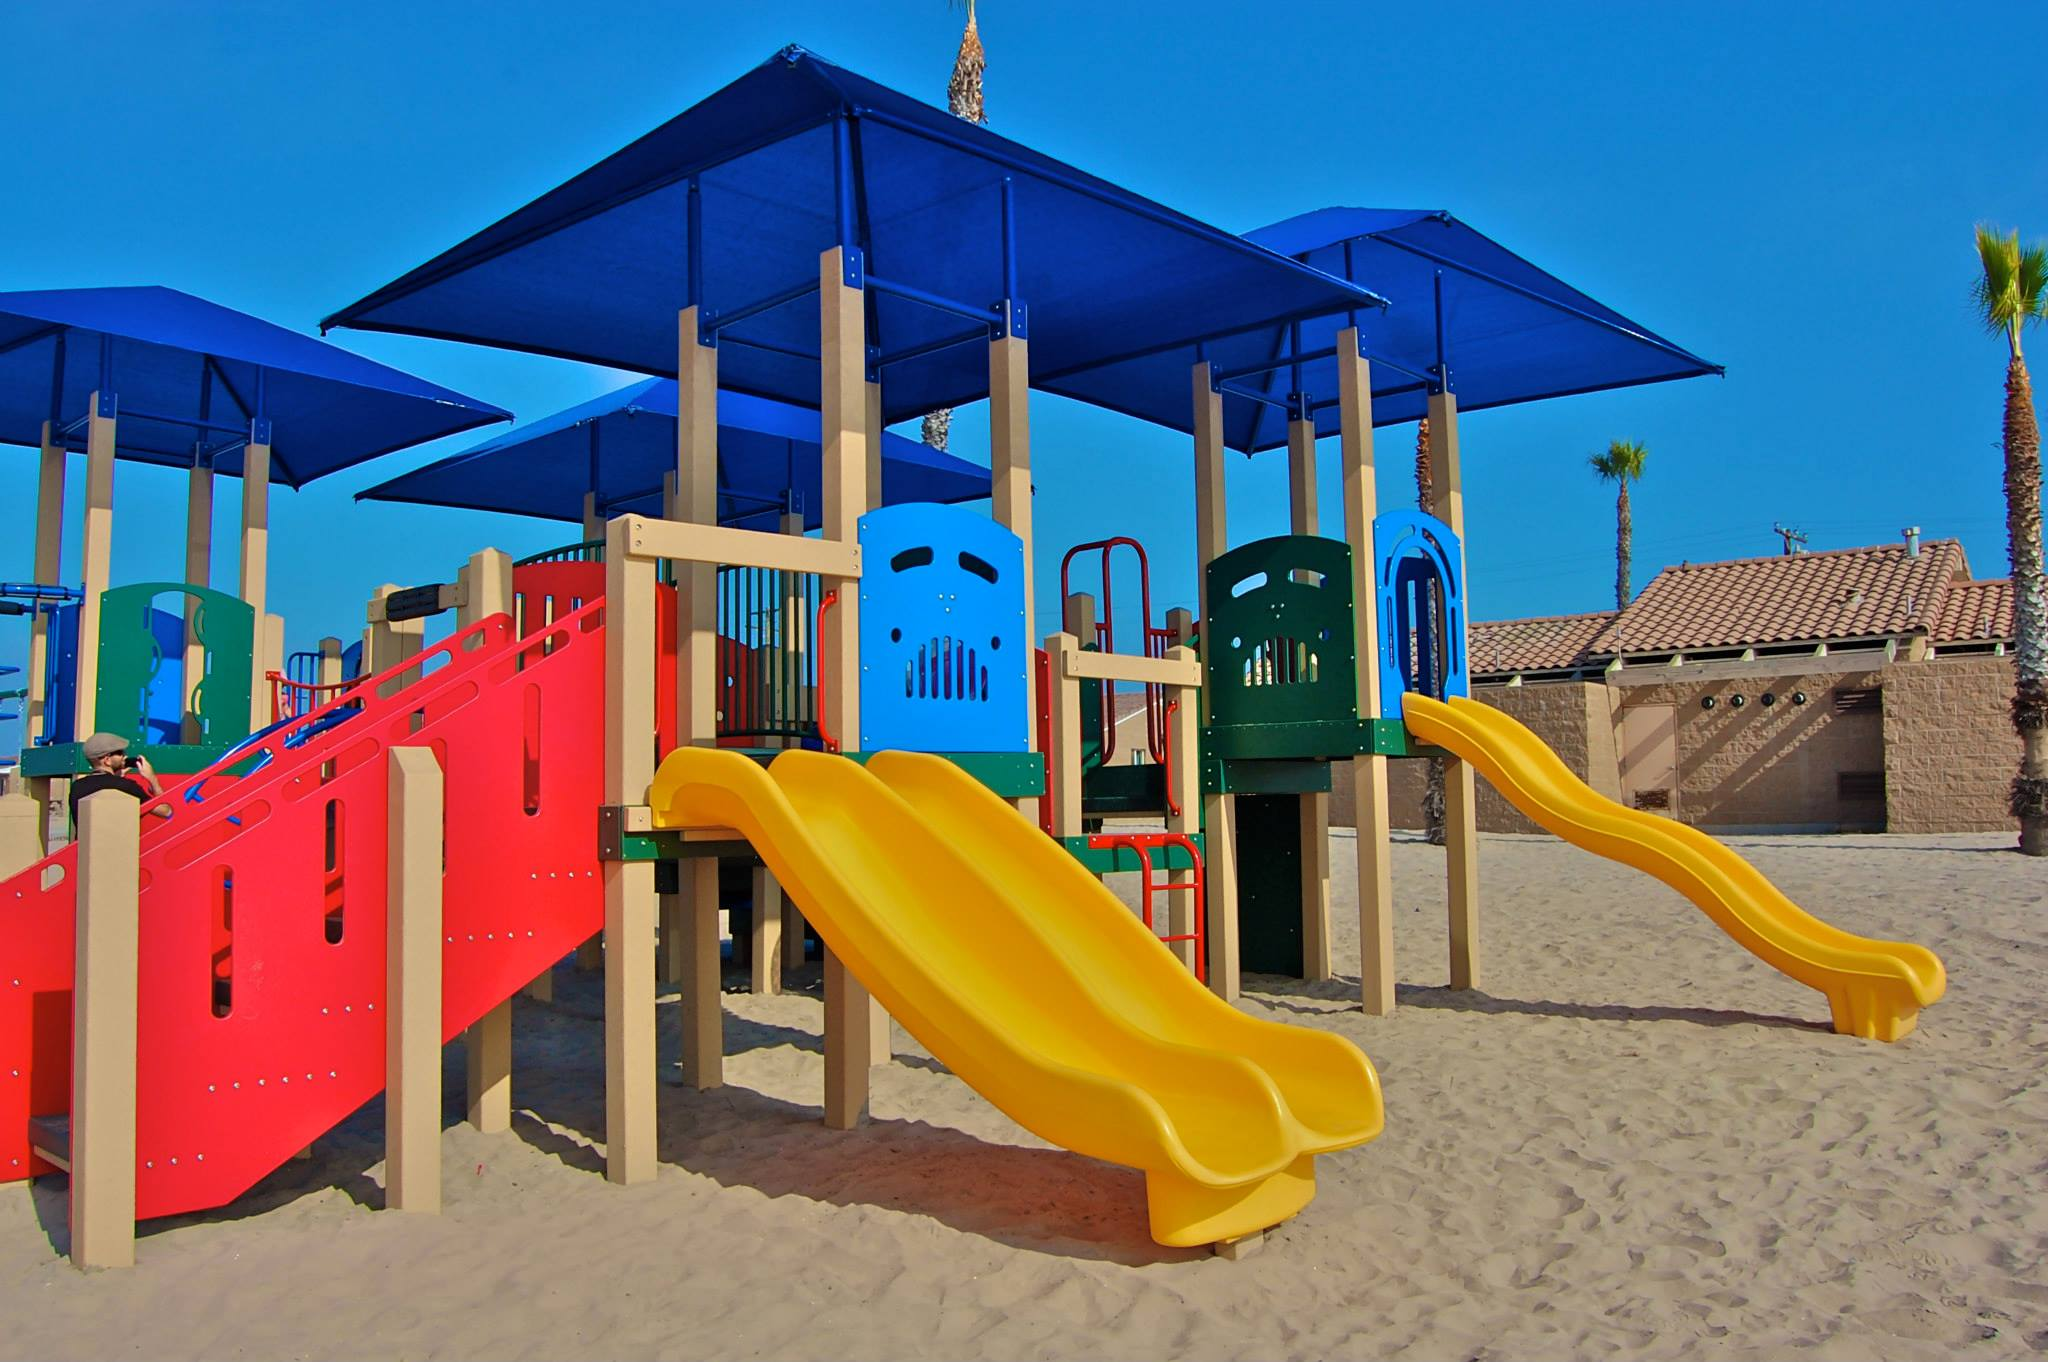 Building Playgrounds from Recycled Plastic